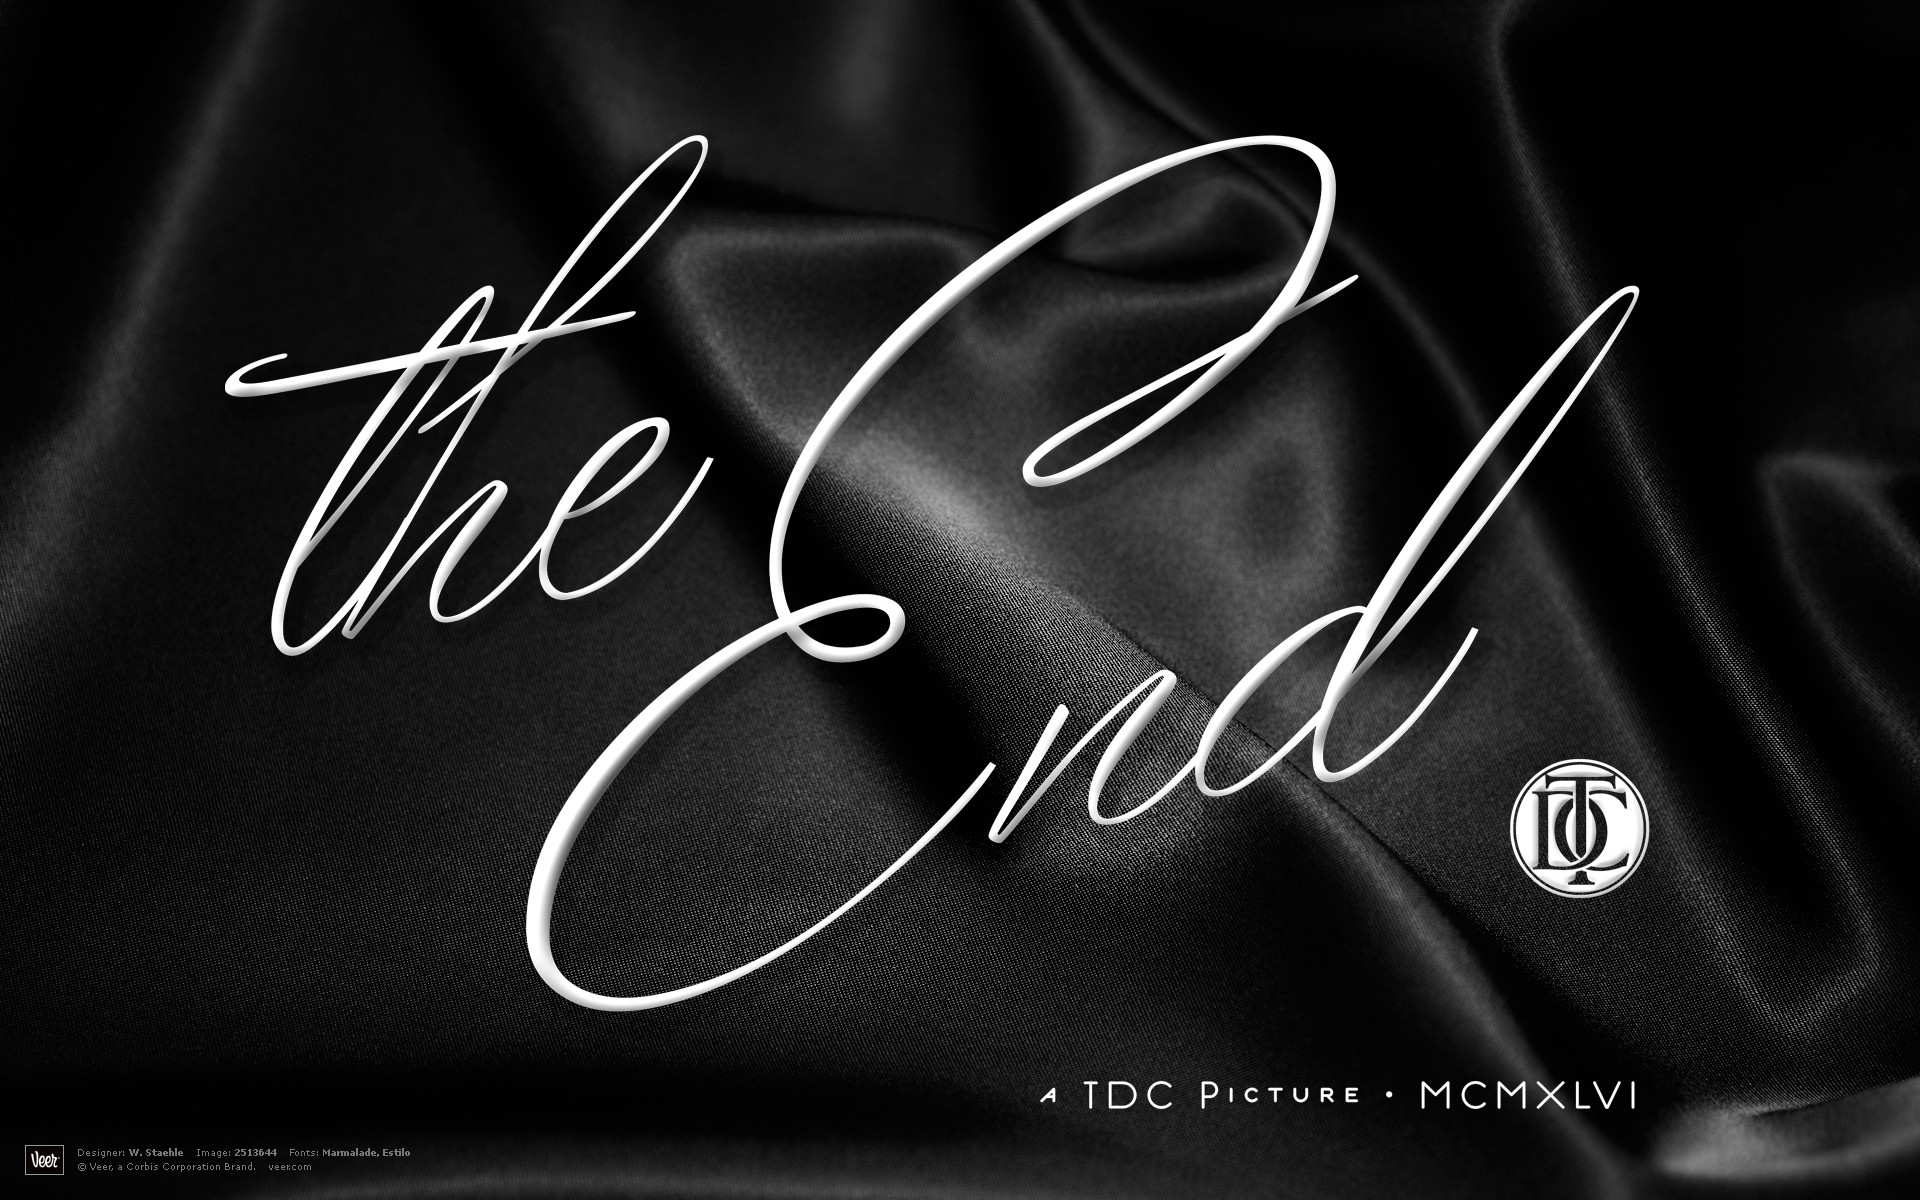 grayscale end movie posters calligraphy cloths wallpaper background 1920x1200